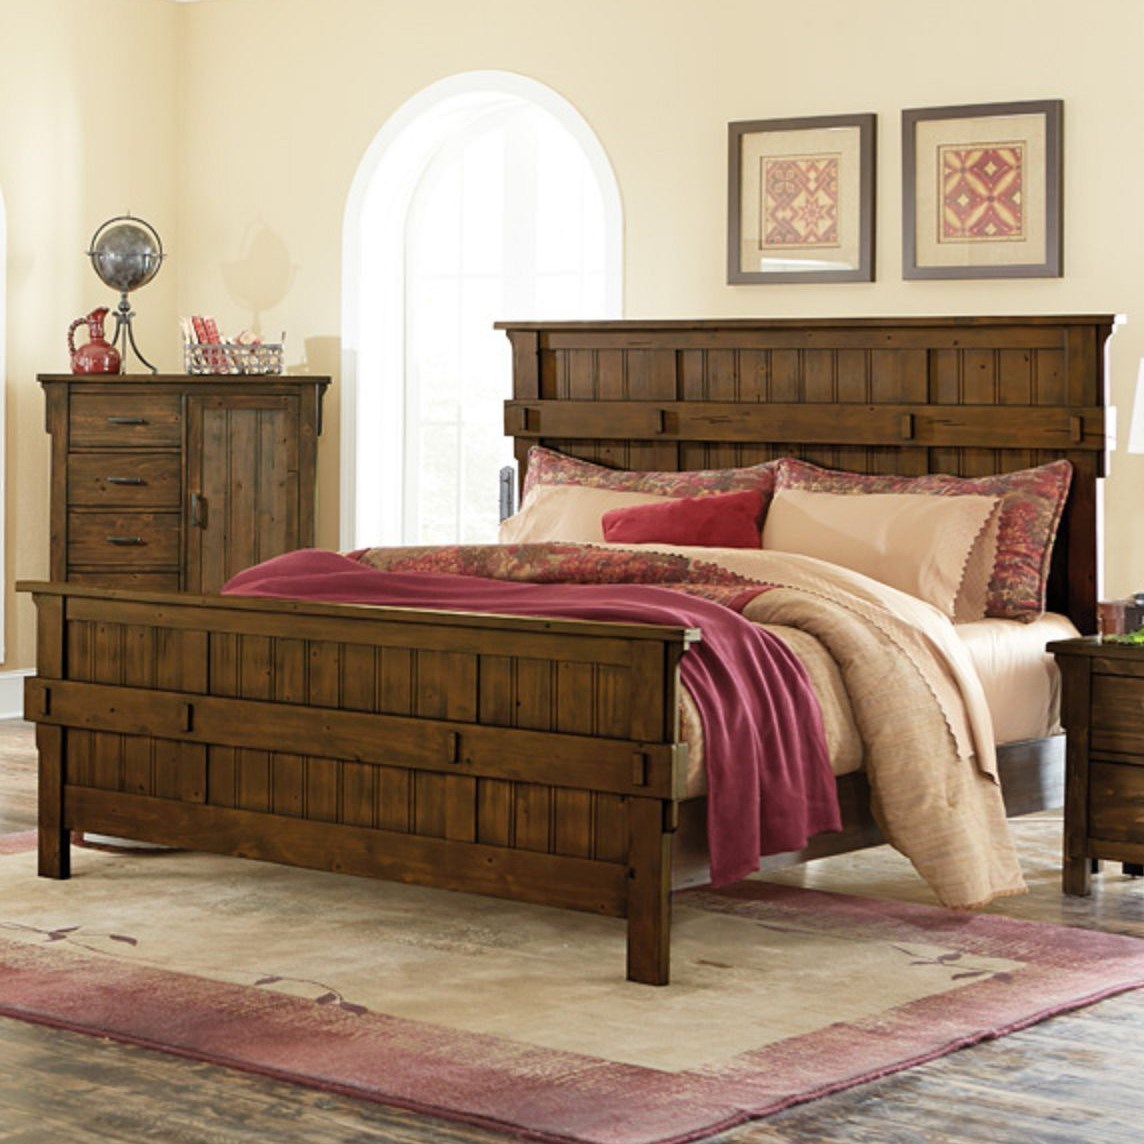 Homelegance Terrace Mission Queen Headboard and Footboard - Item Number: 1907-1+2+3